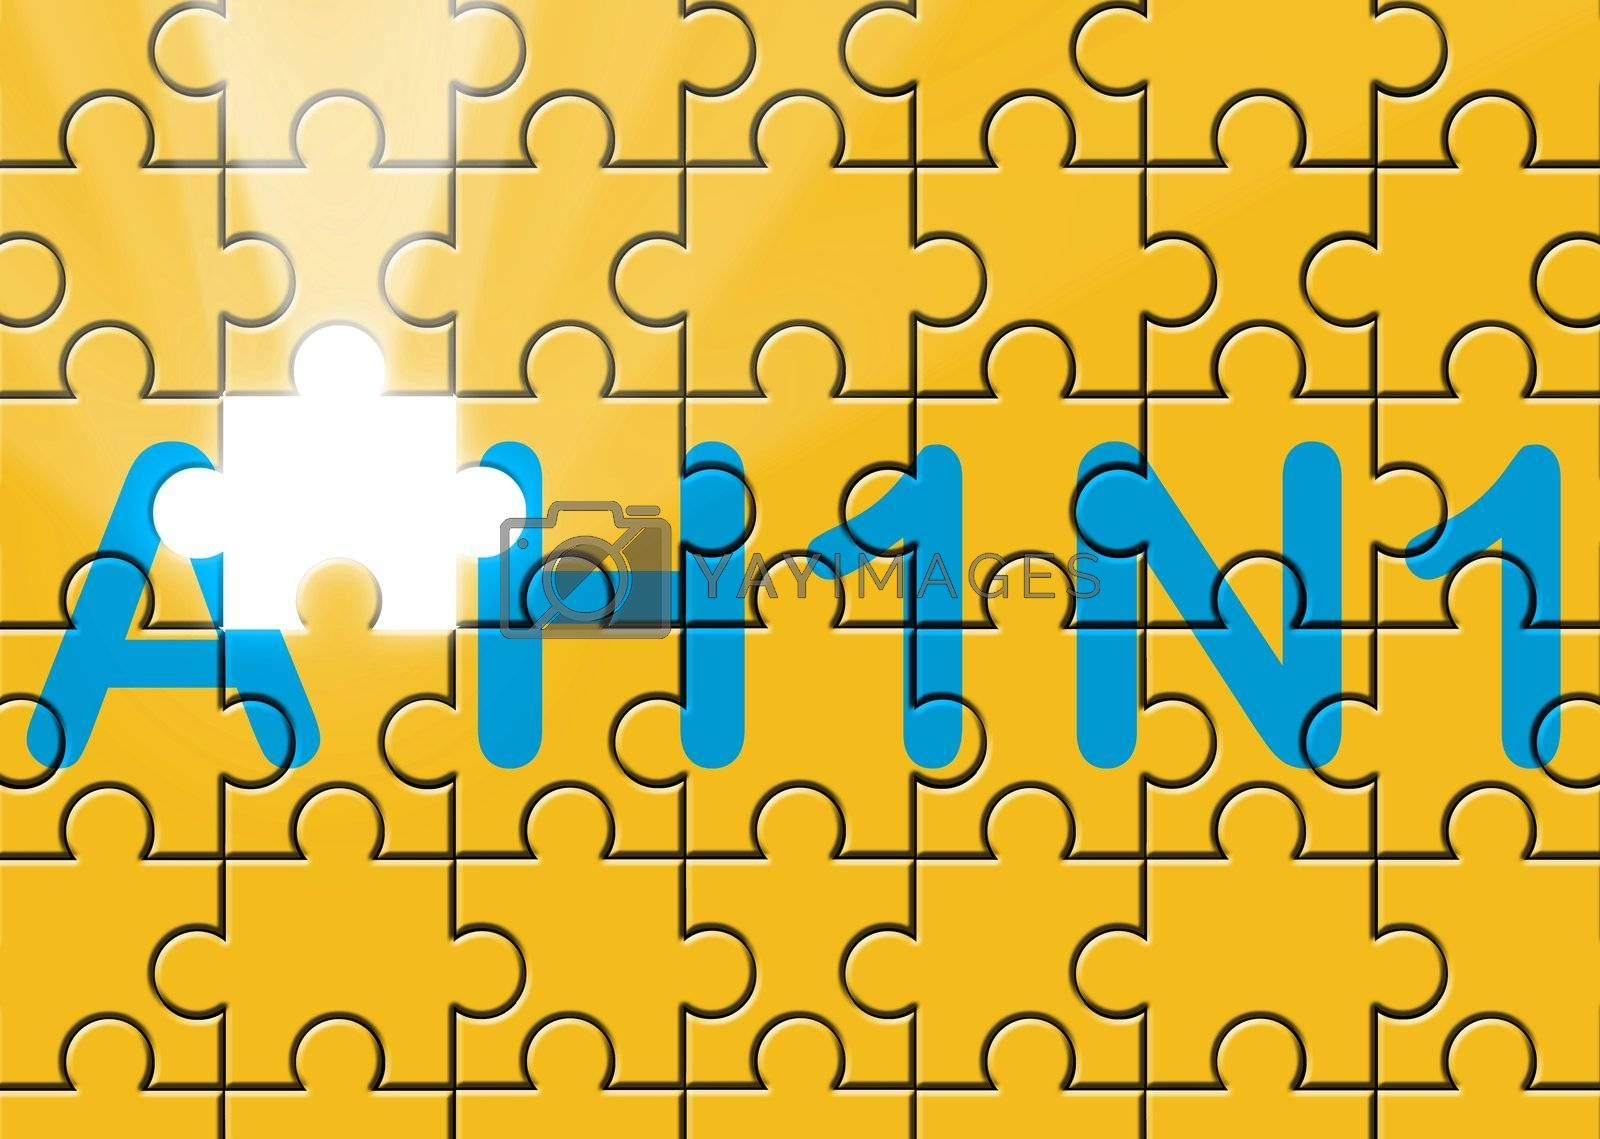 Royalty free image of puzzle with missing piece swine AH1N1 text by lunamarina